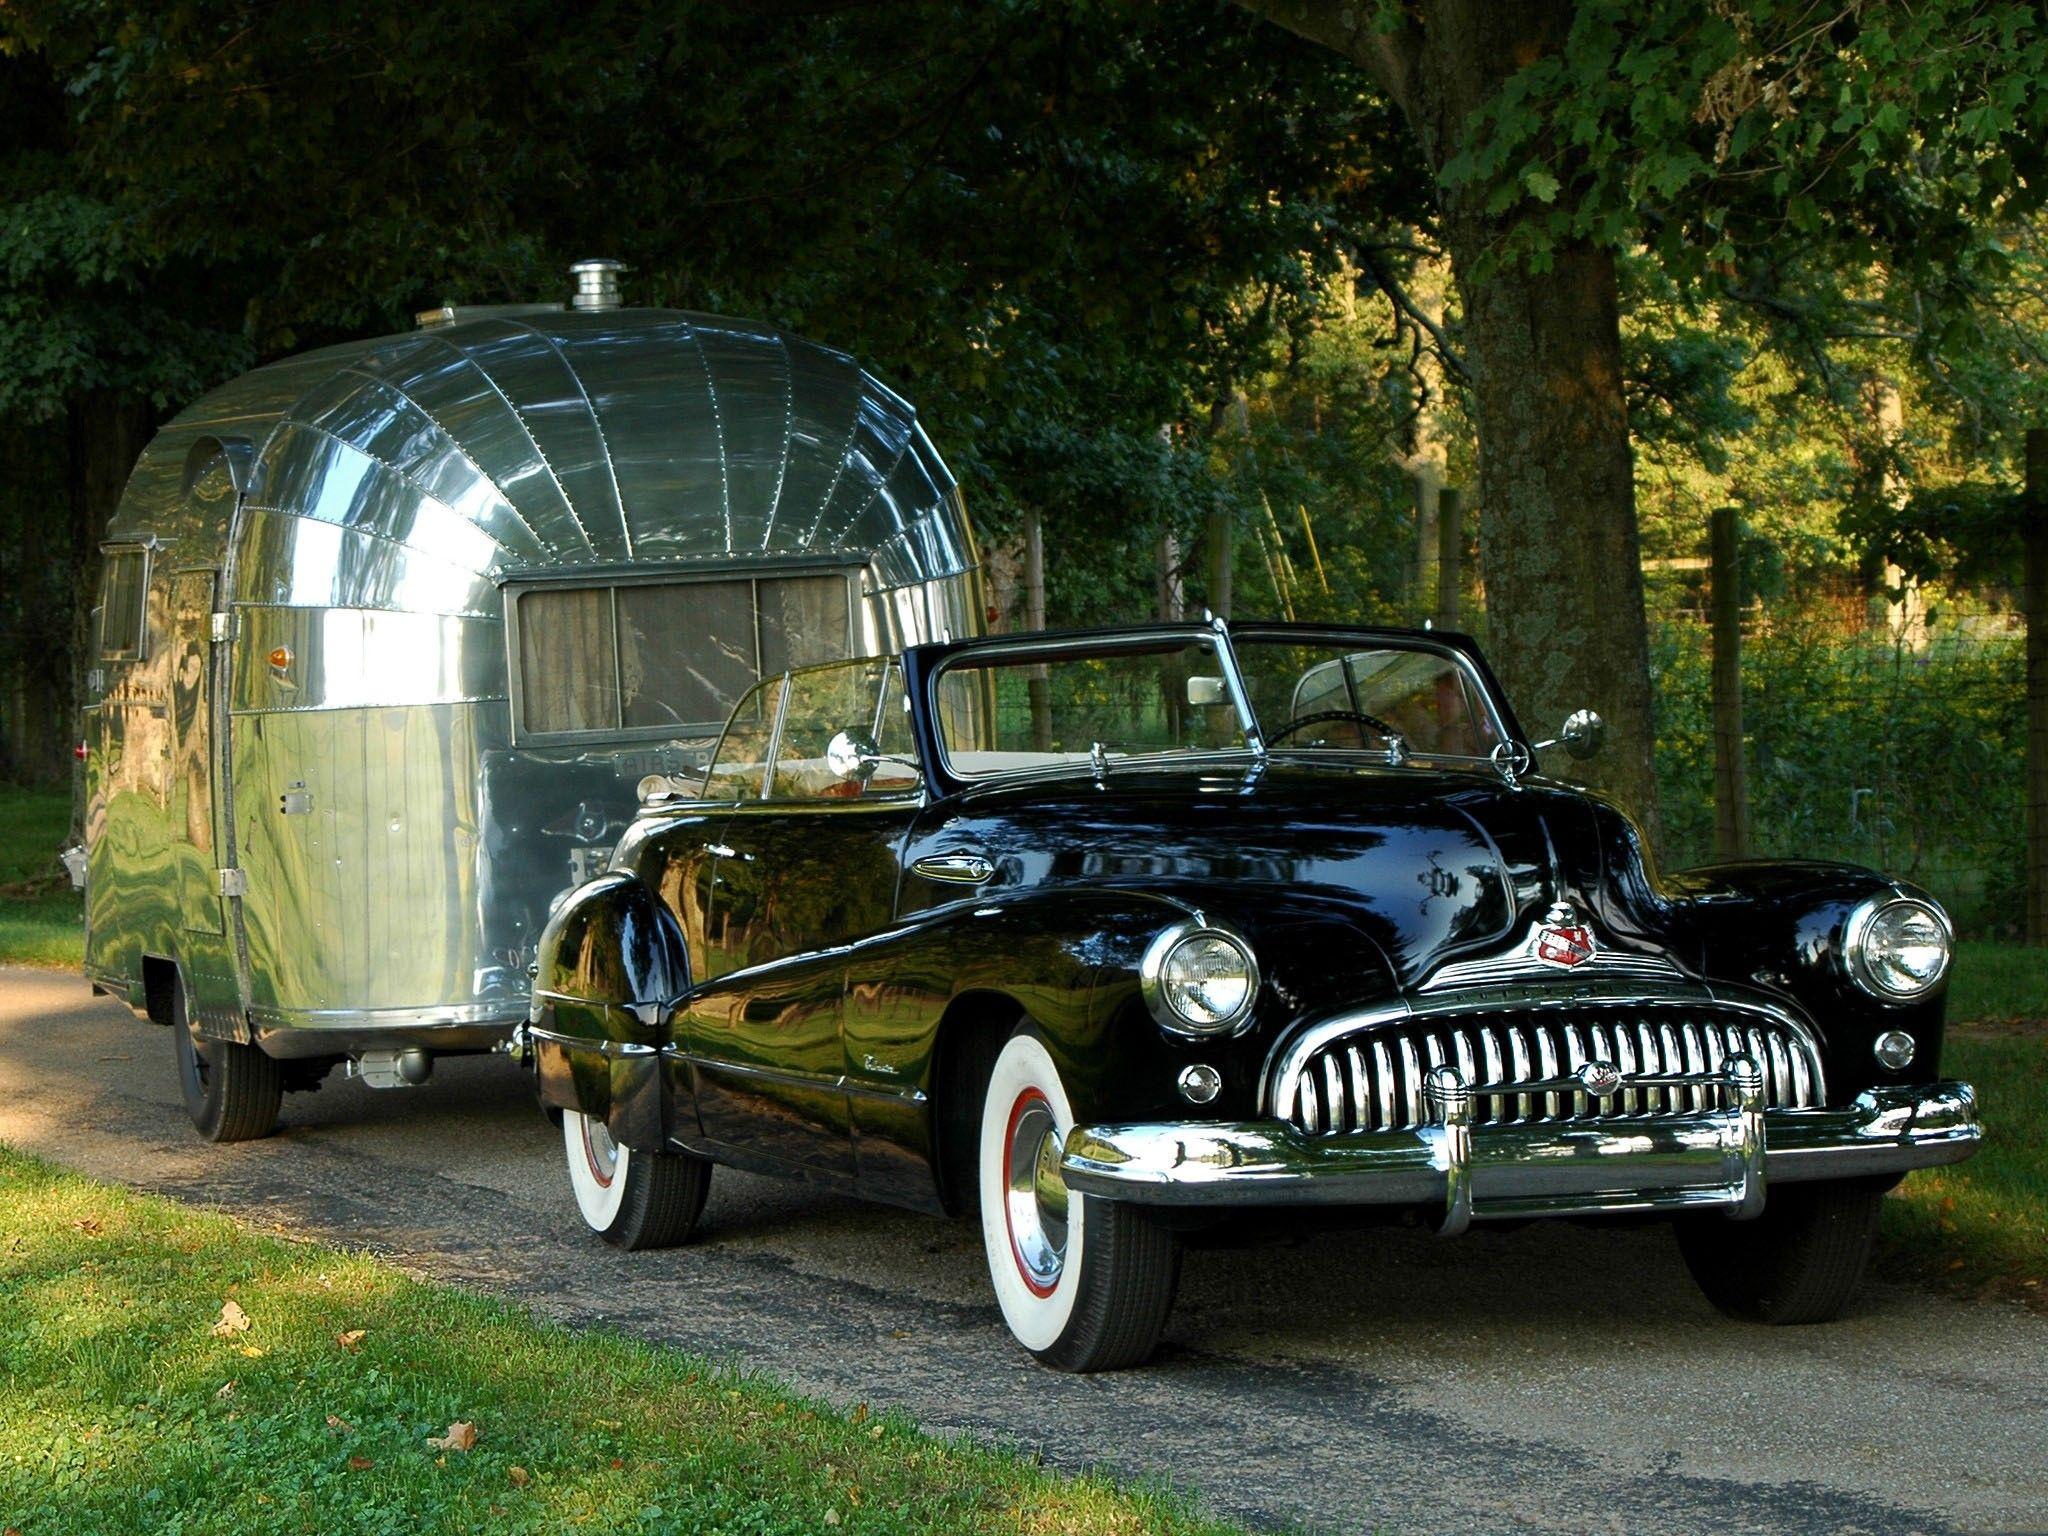 Old Buick convertible pulling an Airstream trailer. Hard to get ...